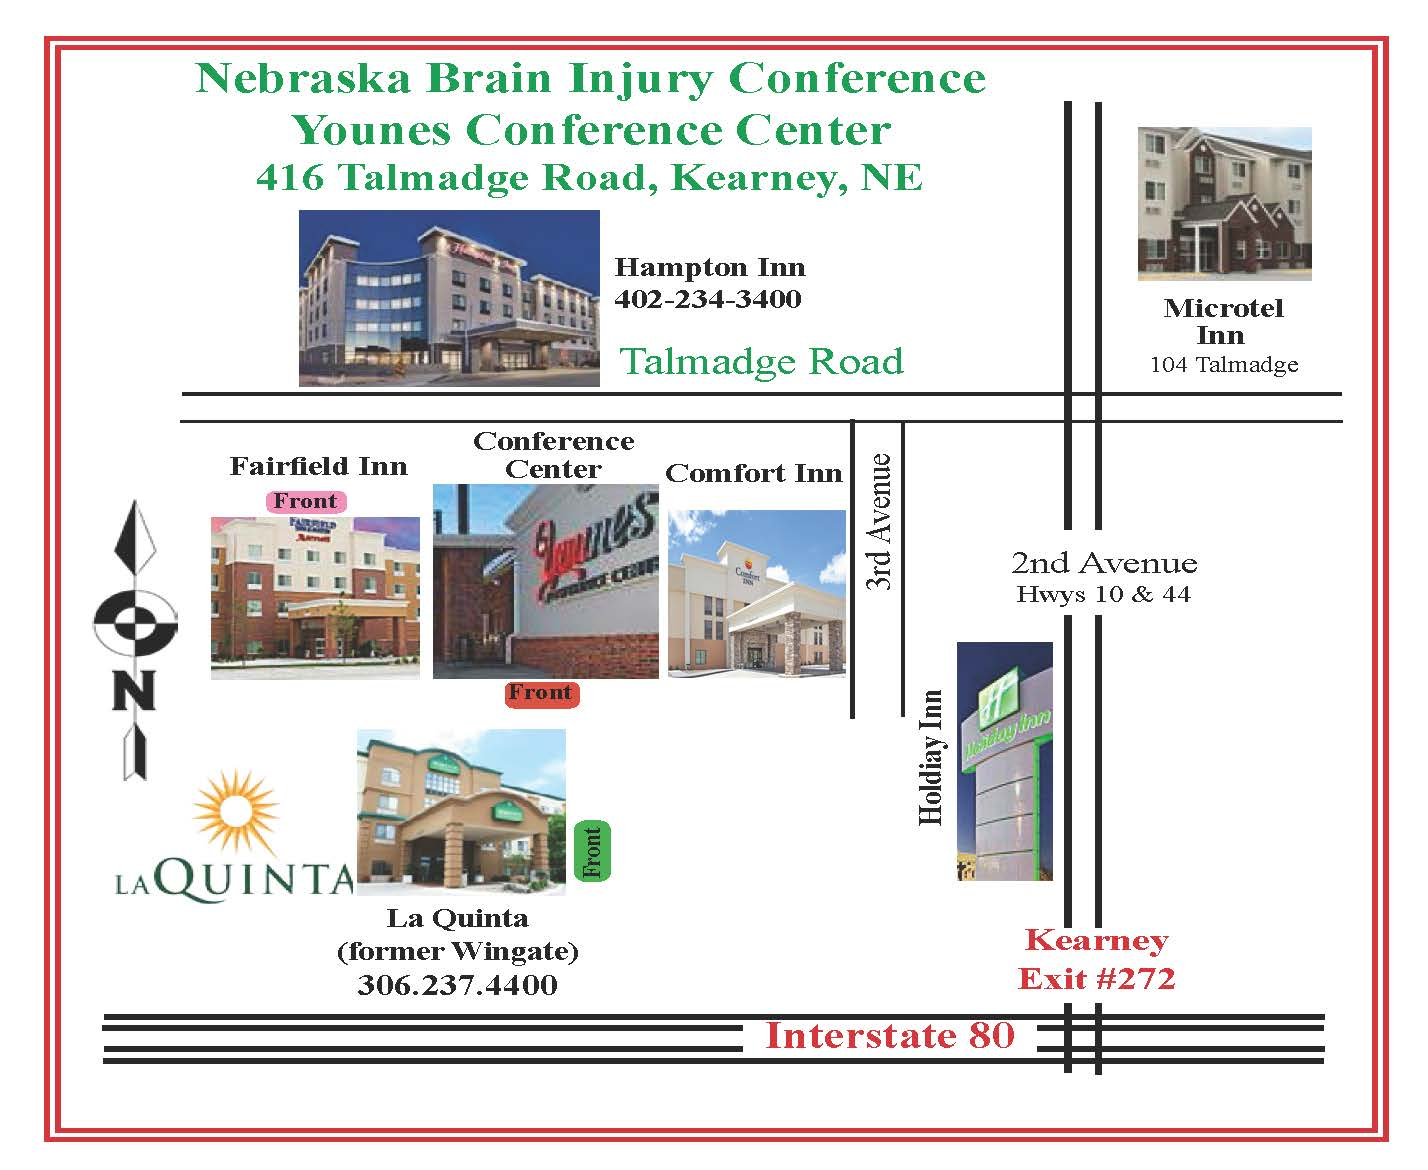 Download Conference Hotel Map (Above)